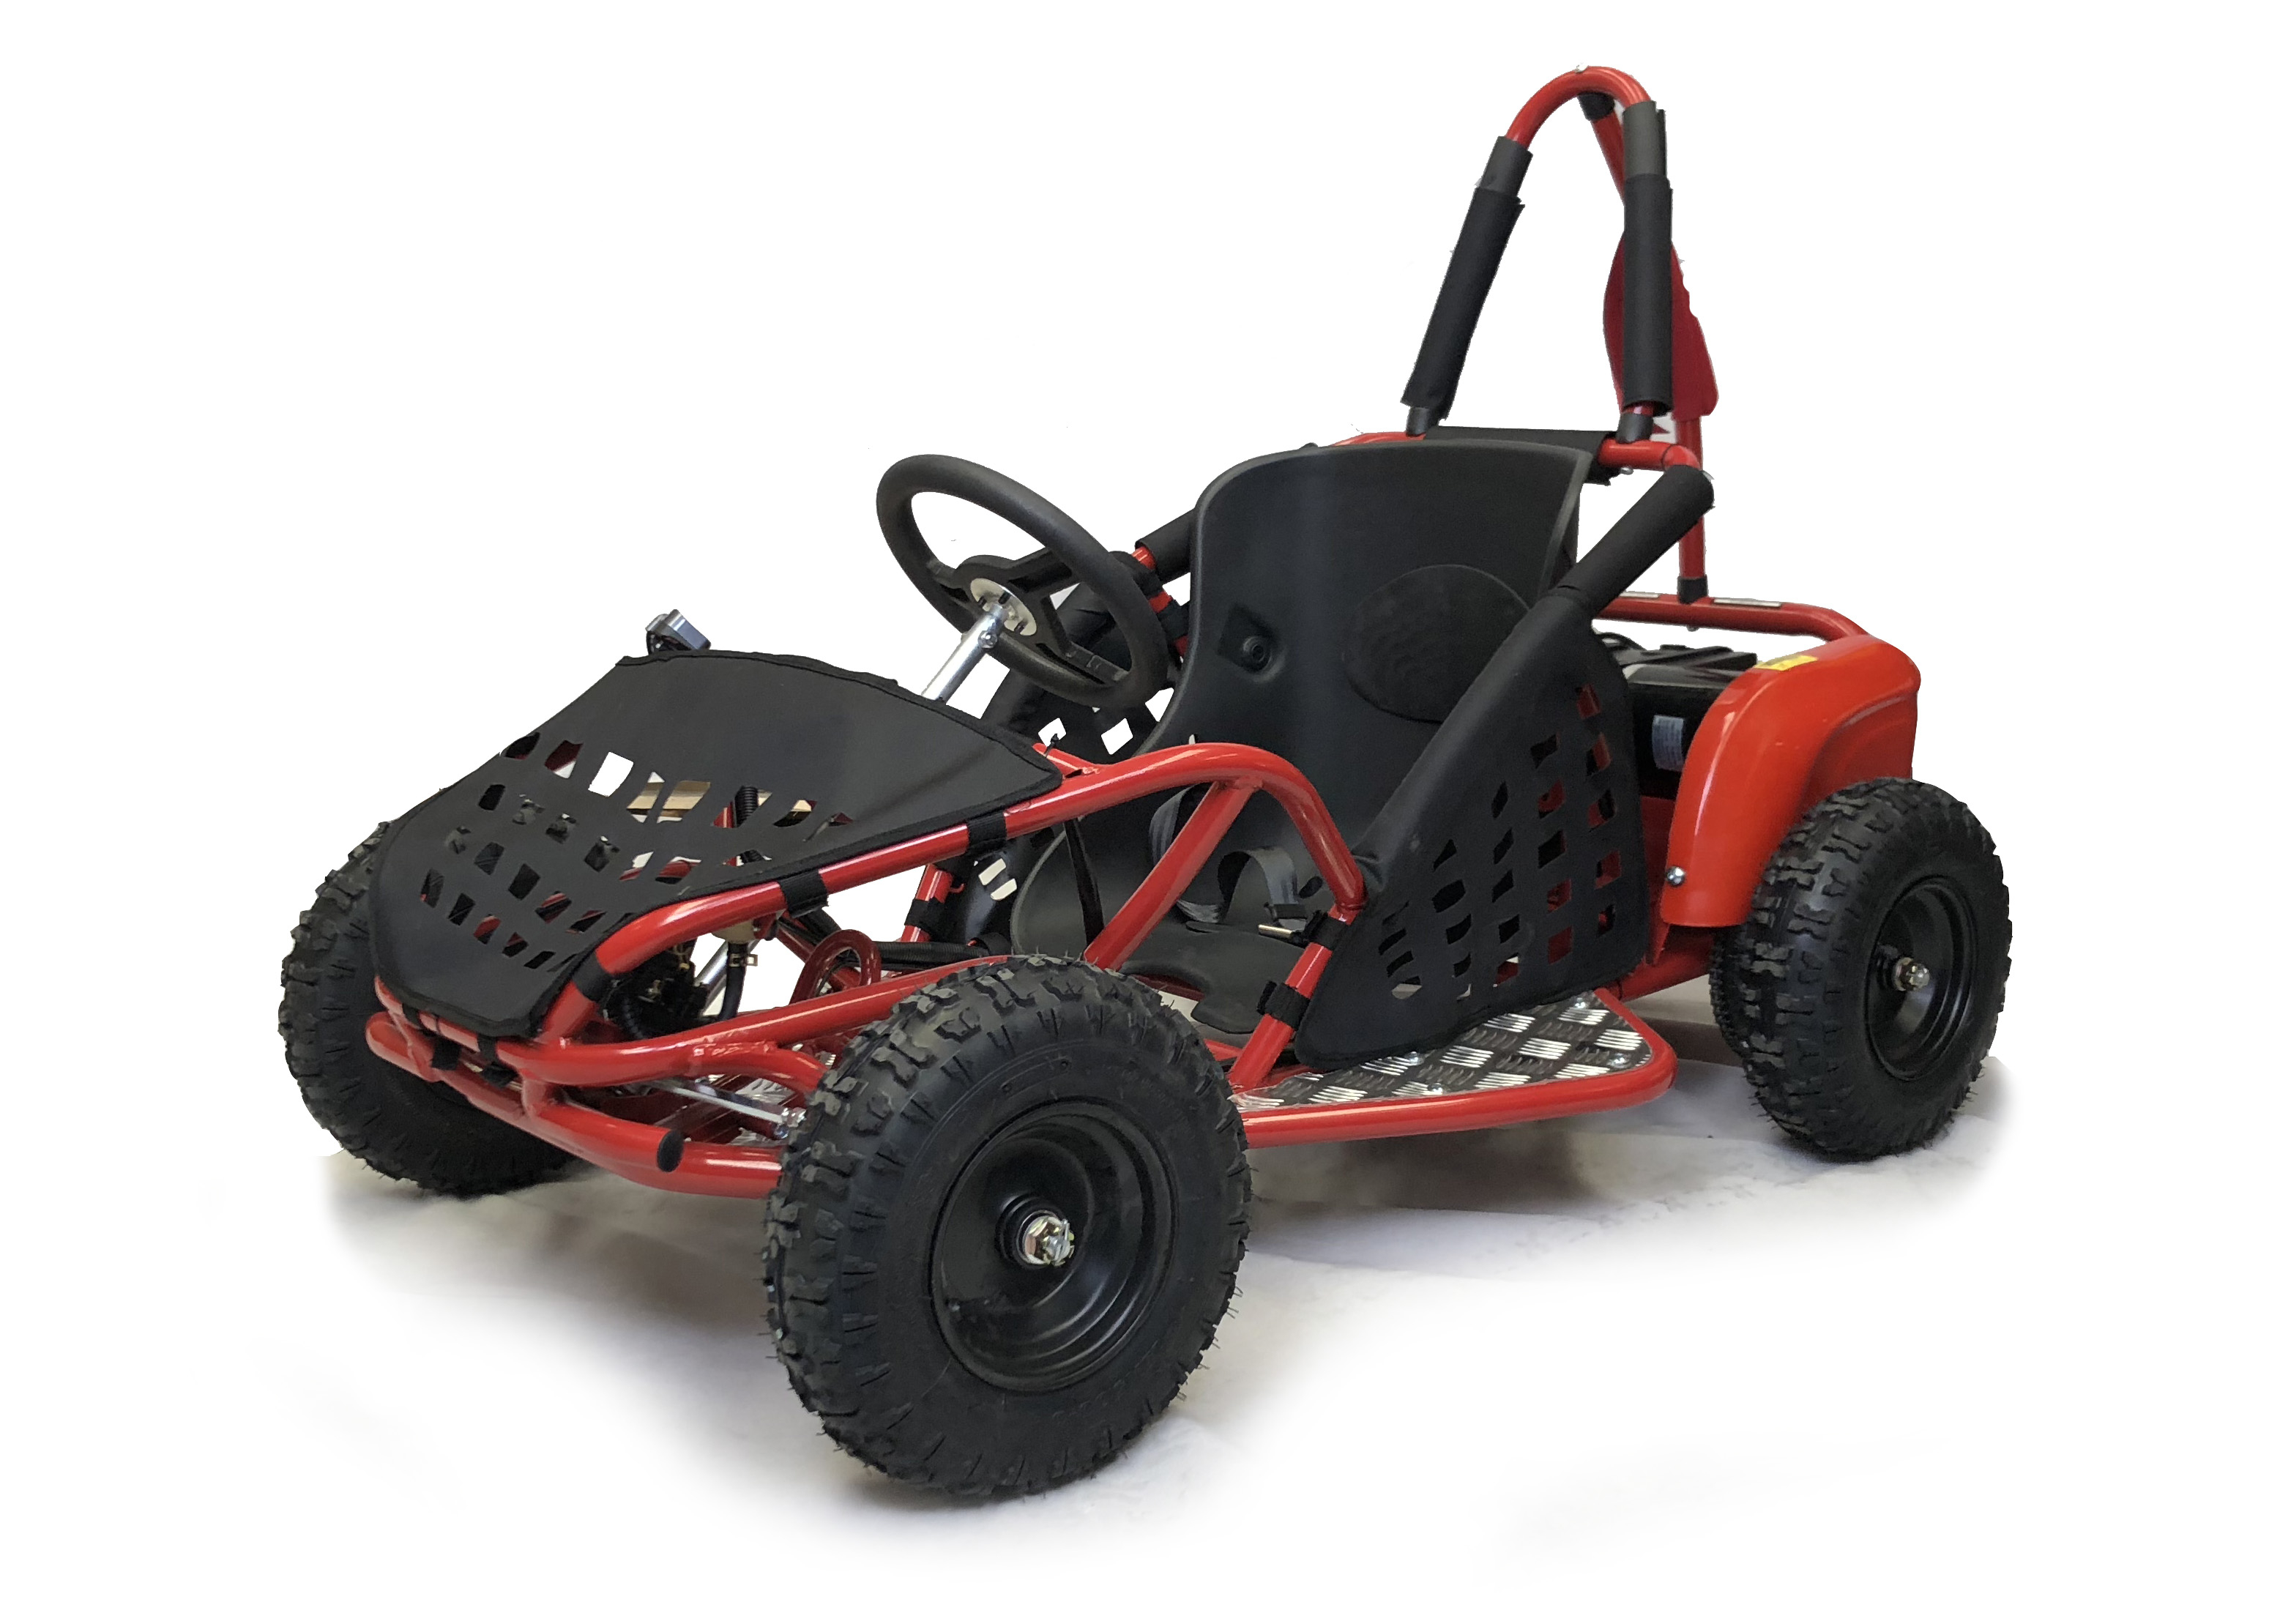 BUNDLE DEAL! 1000w Kids Electric Go Kart - Red